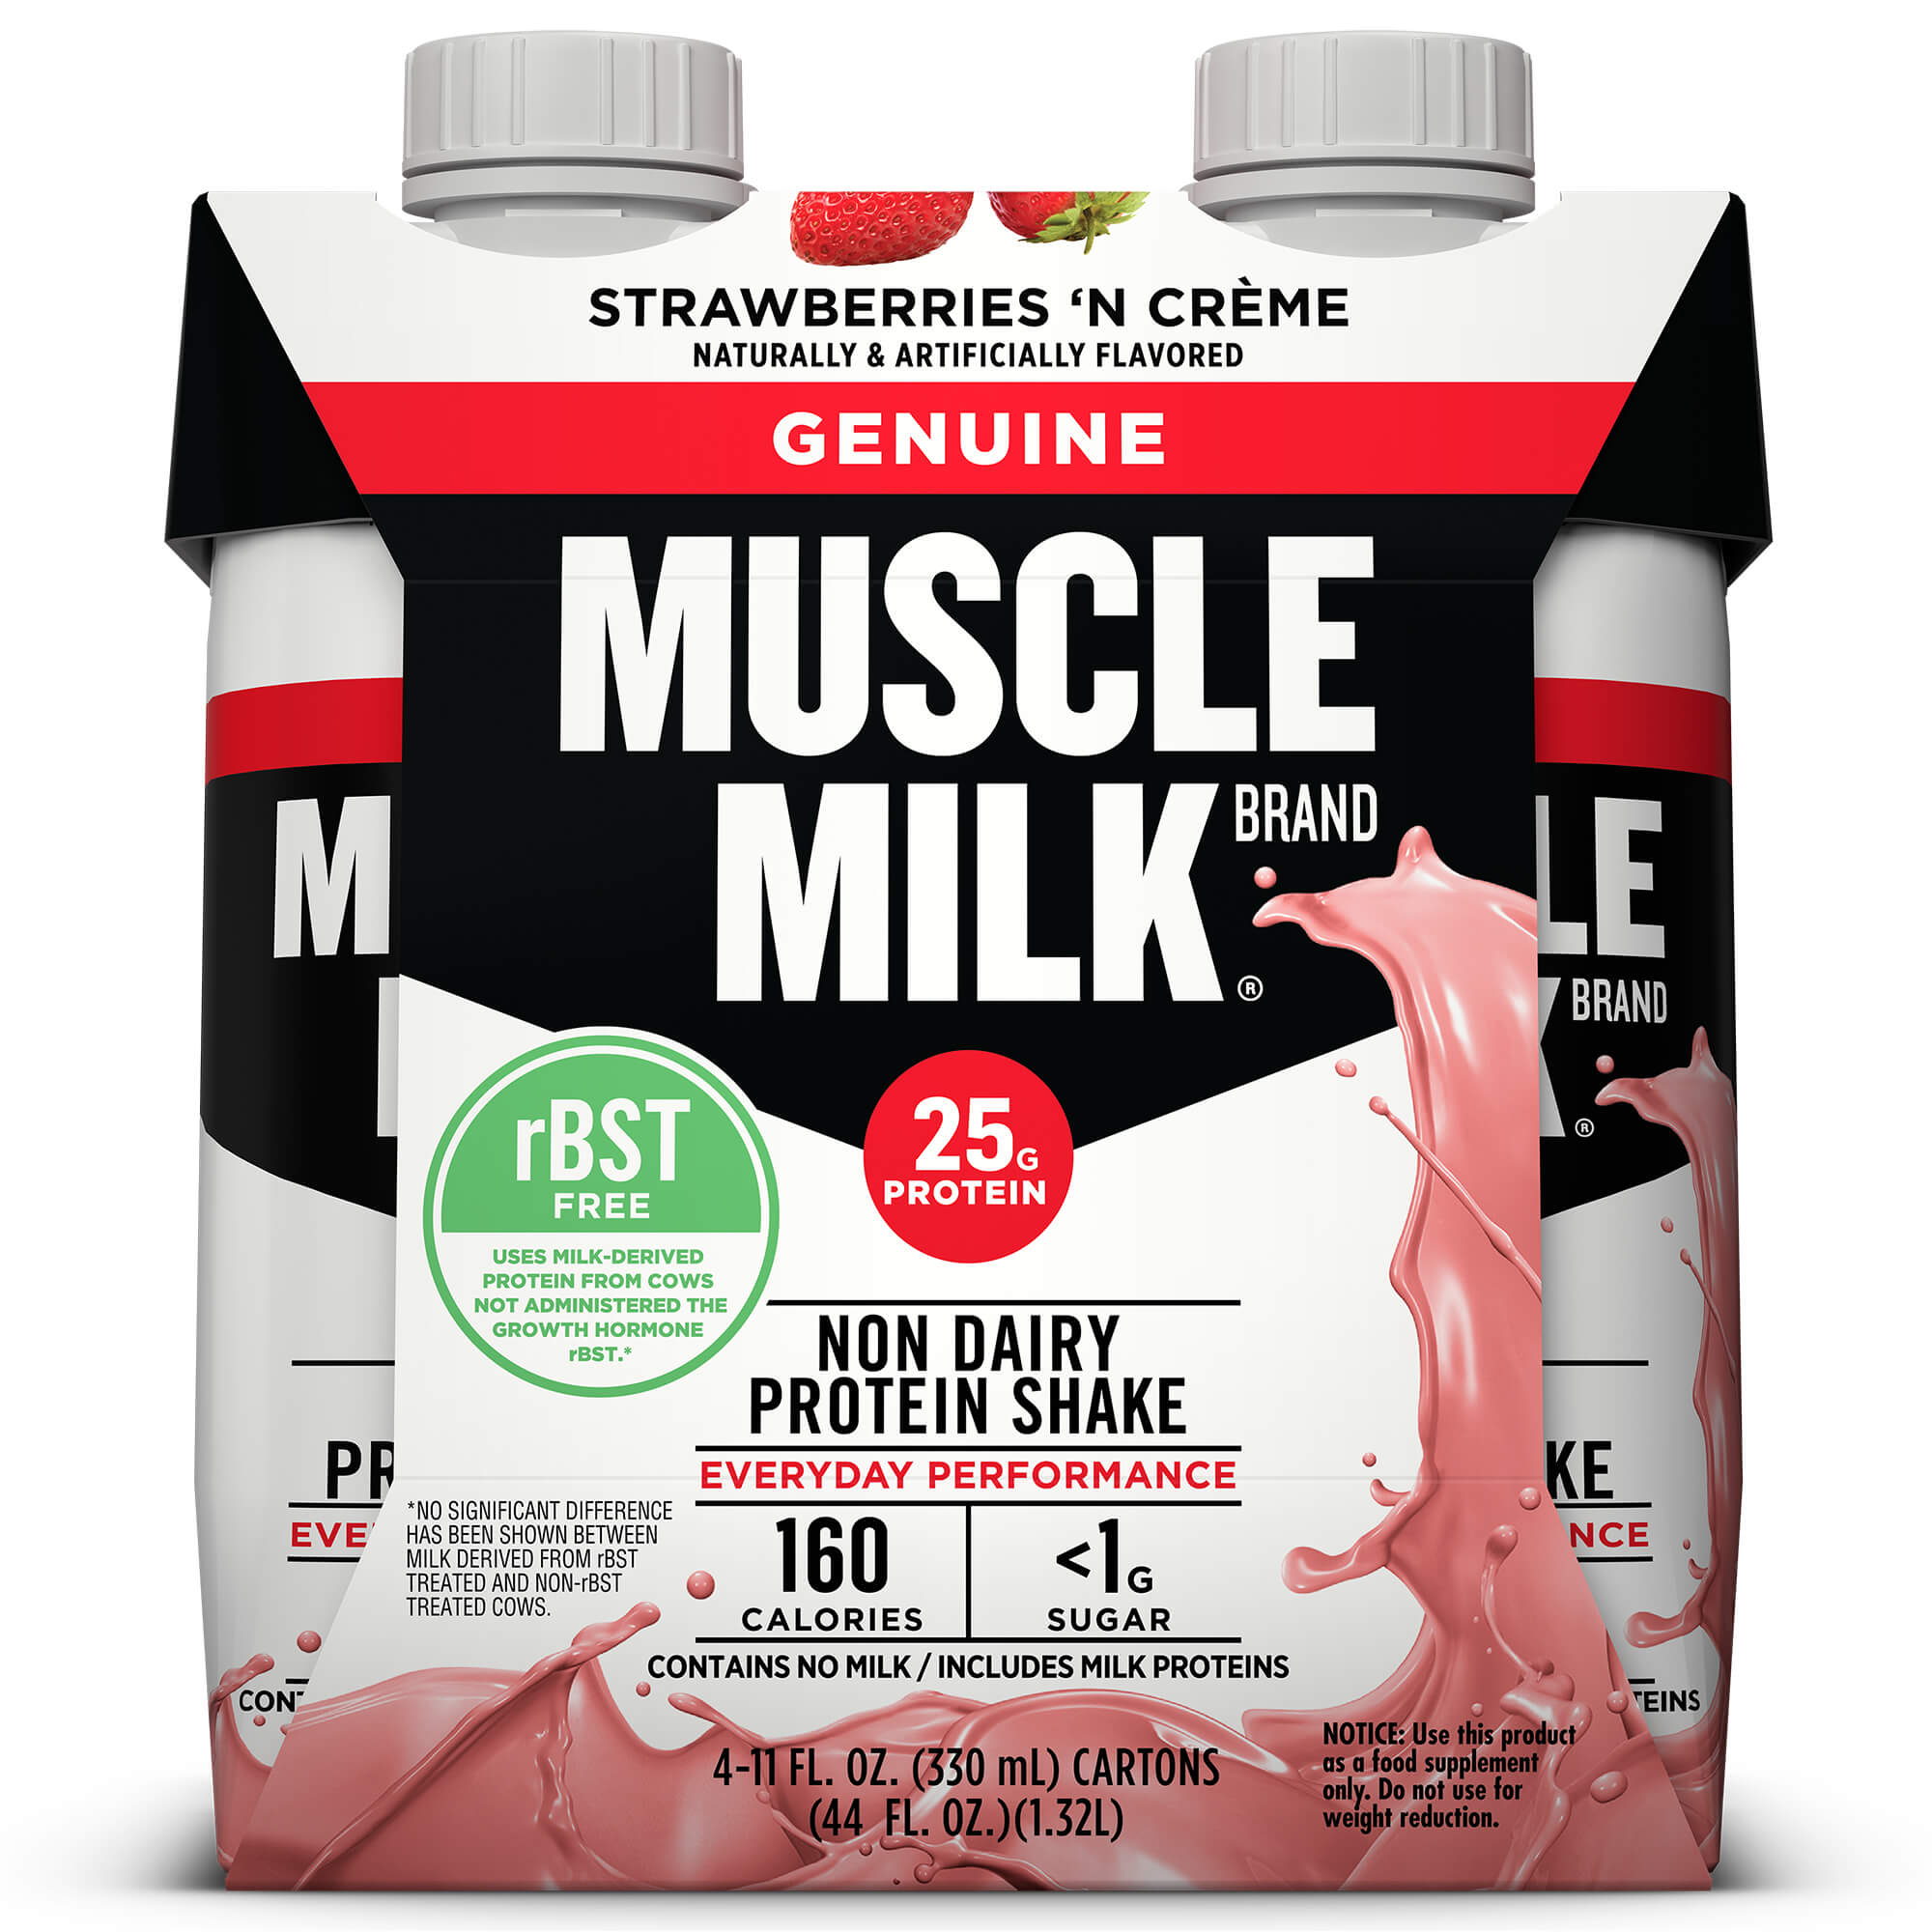 Muscle Milk Genuine Non-Dairy Protein Shake, Strawberries 'N Crème, 25g Protein, 11 Fl Oz, 4 Ct